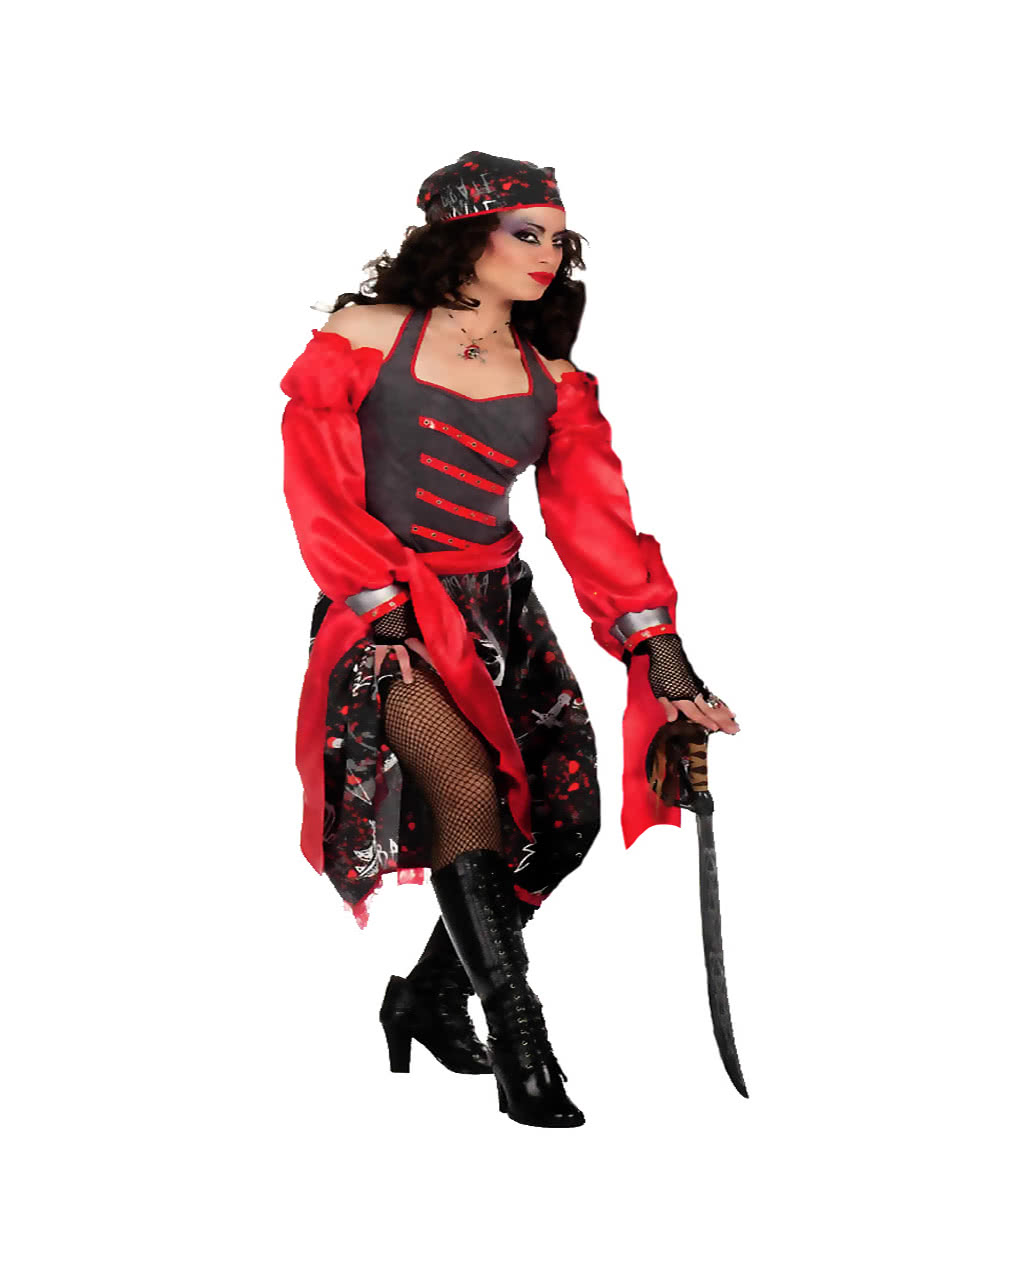 a46a67cb2ec Skull Pirate Woman Costume Plus Size to order